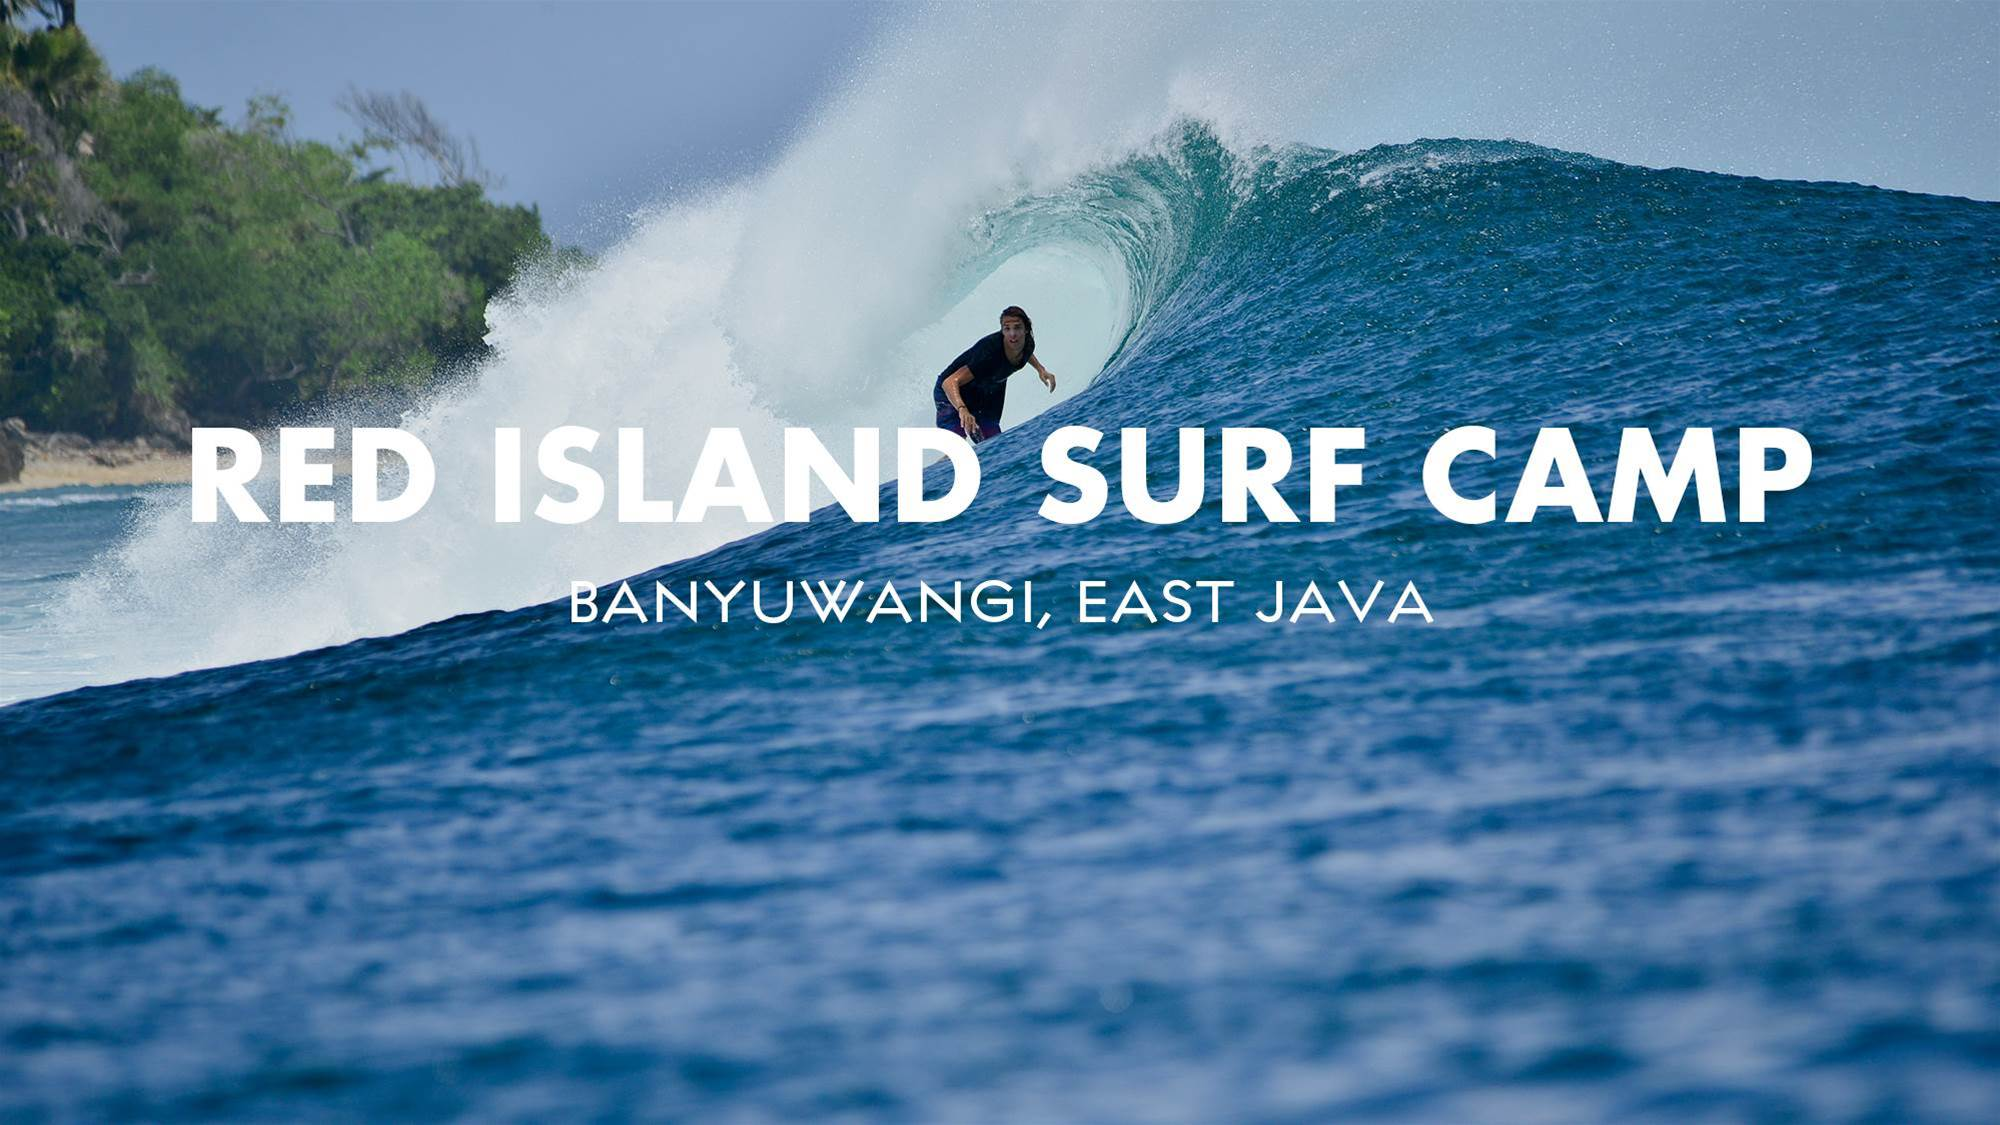 RED ISLAND SURF CAMP